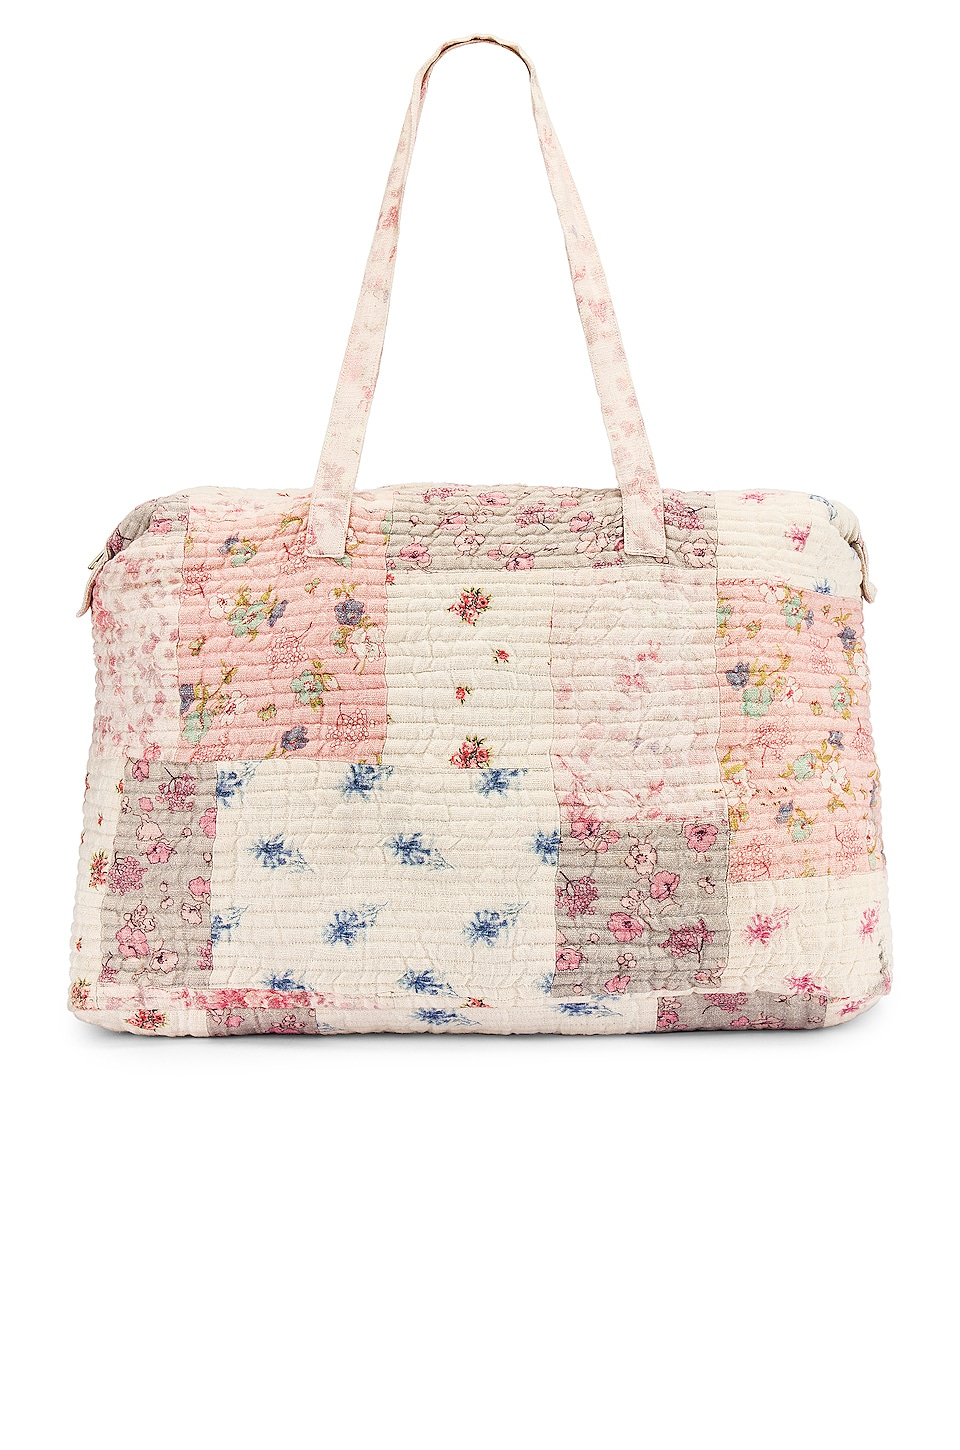 LoveShackFancy Oran Weekend Bag in Multi